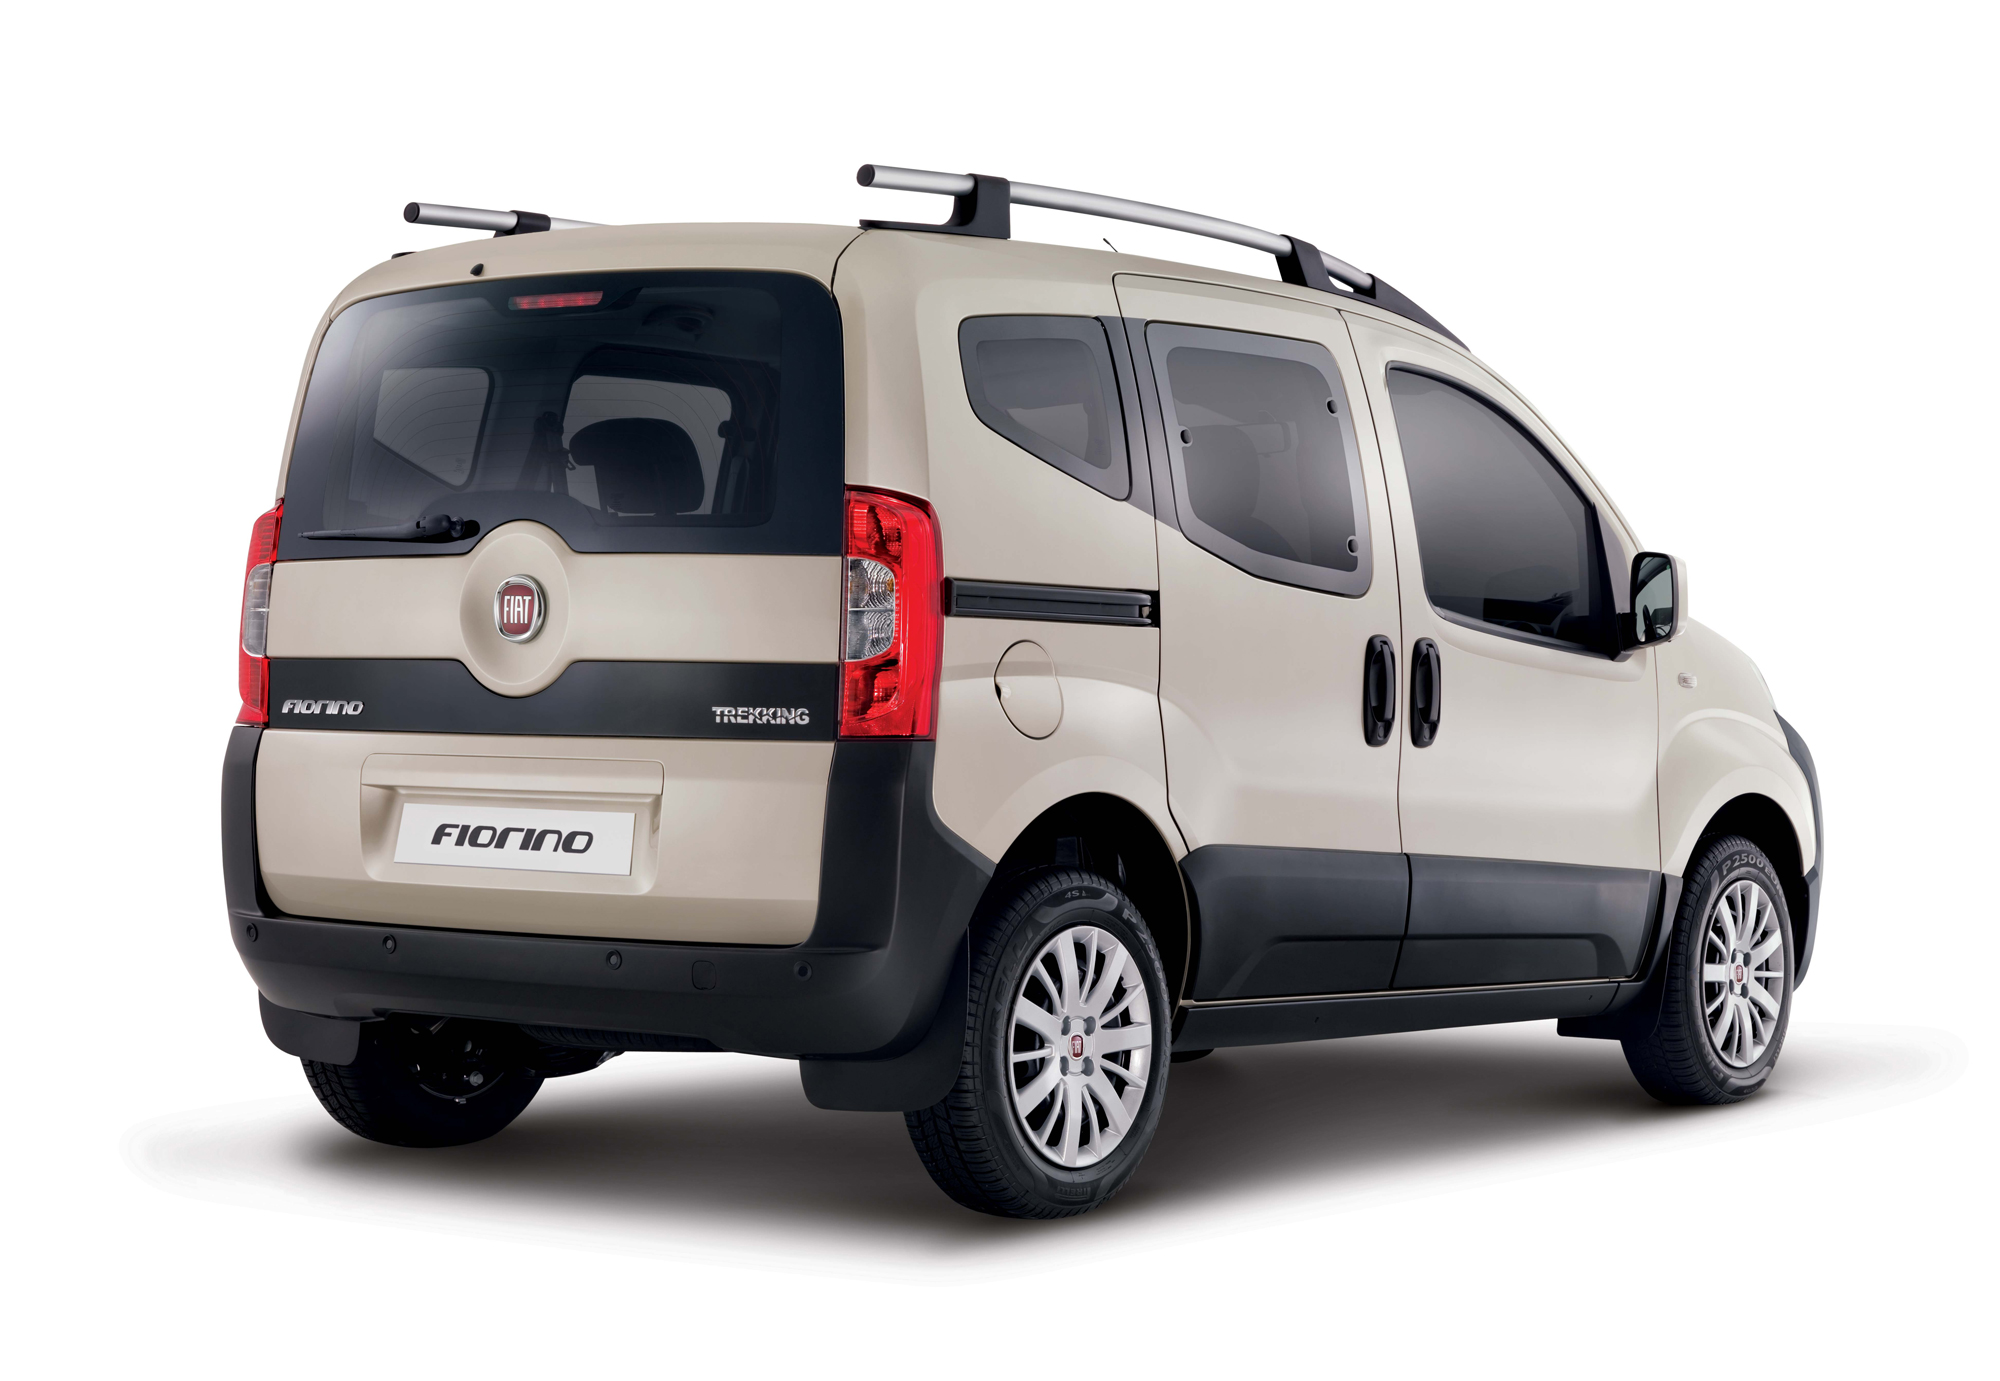 Fiat fiorino photo - 7